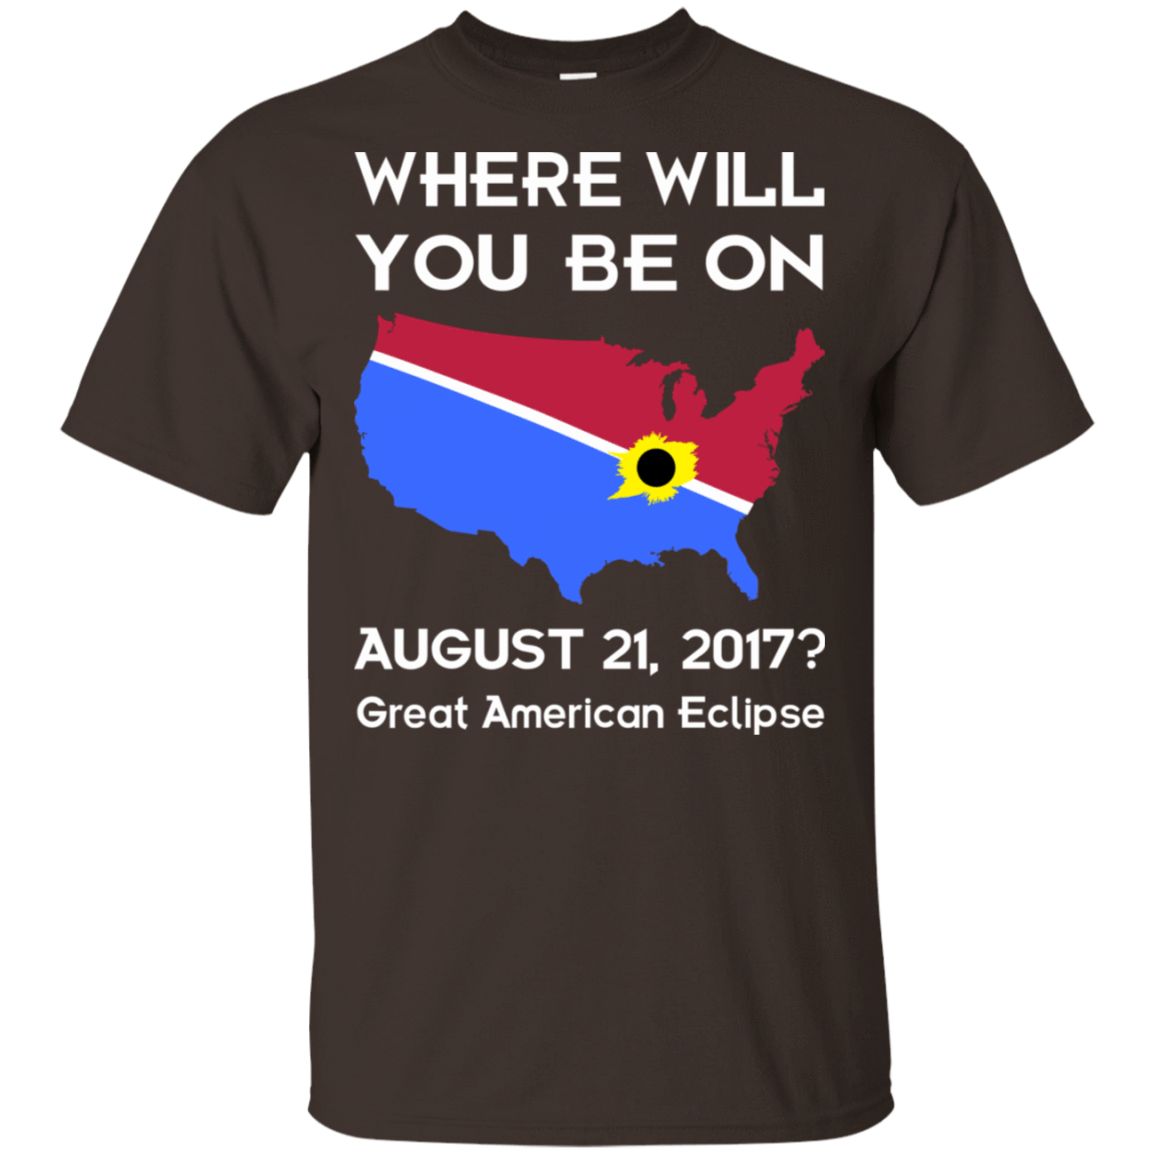 Solar Eclipse 2017: Where Will You Be On August 21 2017 22-2283-72772488-12087 - Tee Ript